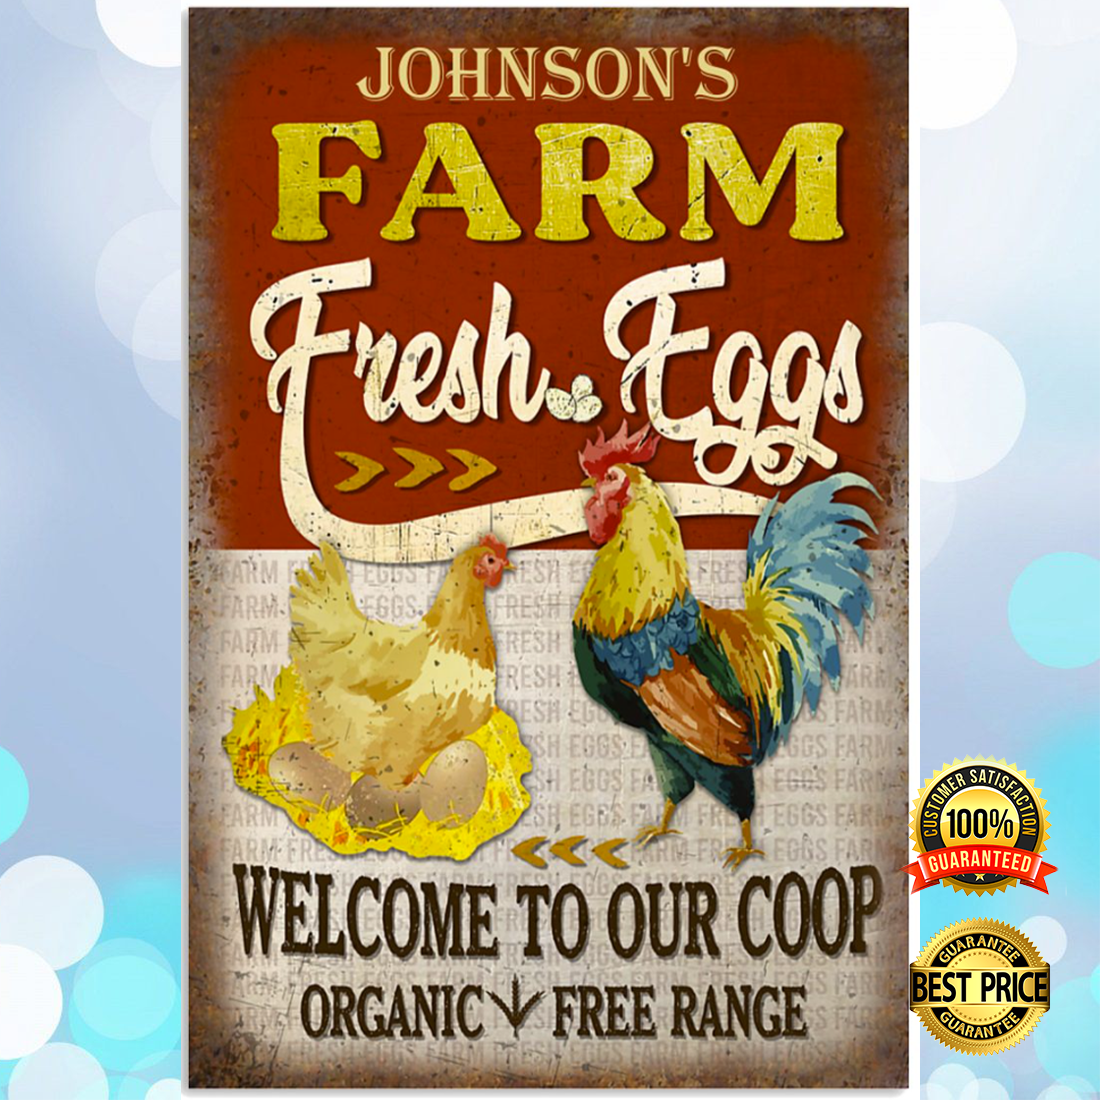 Personalized farm fresh eggs welcome to our coop organic free range poster 4